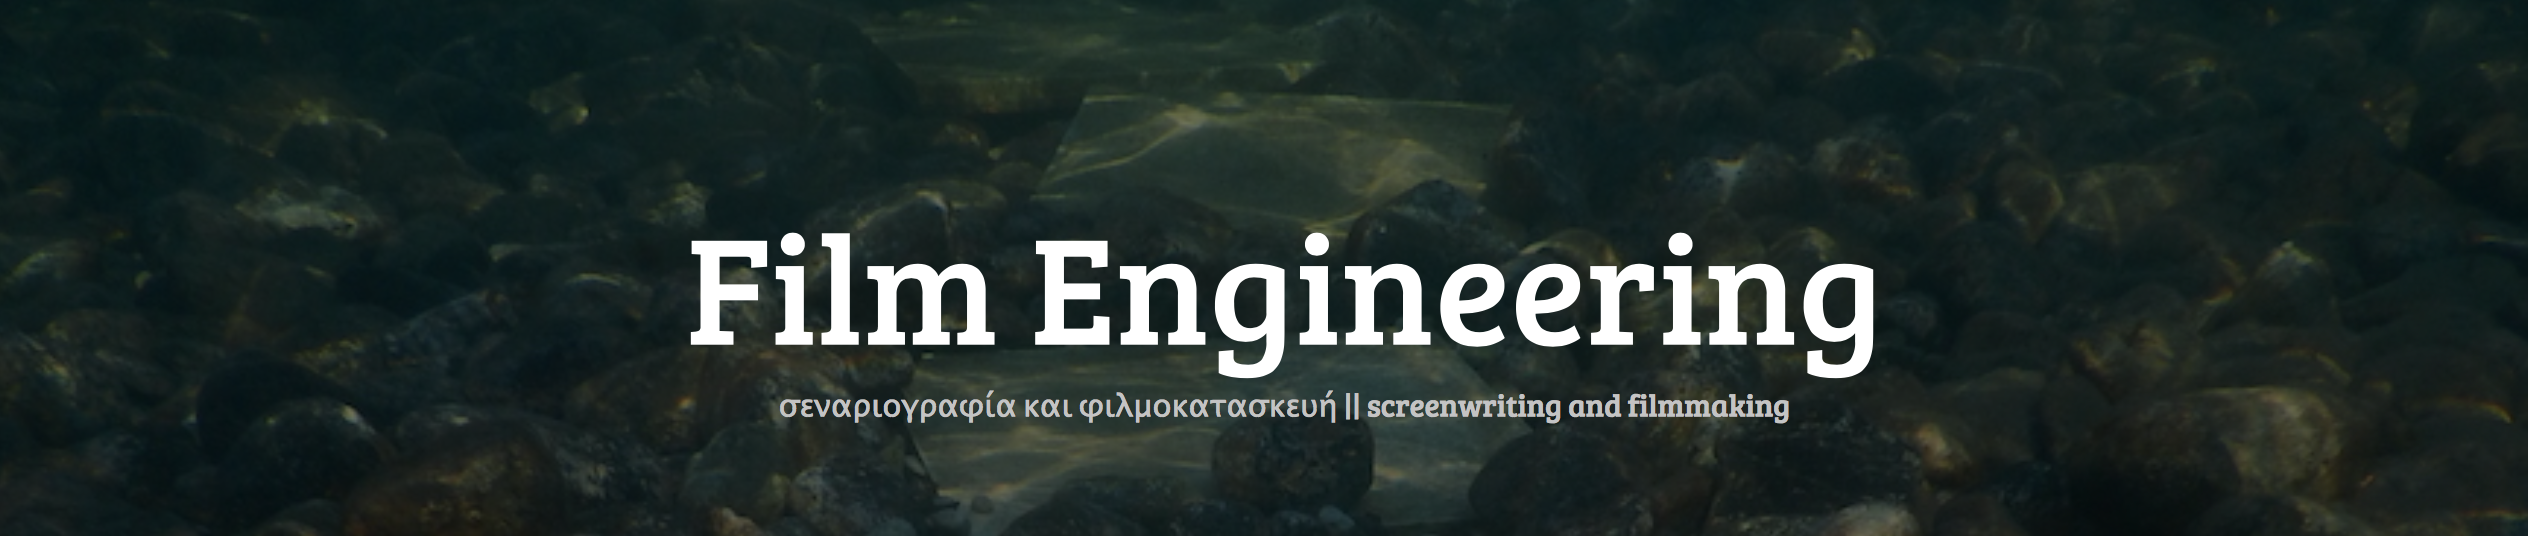 Film Engineering header image